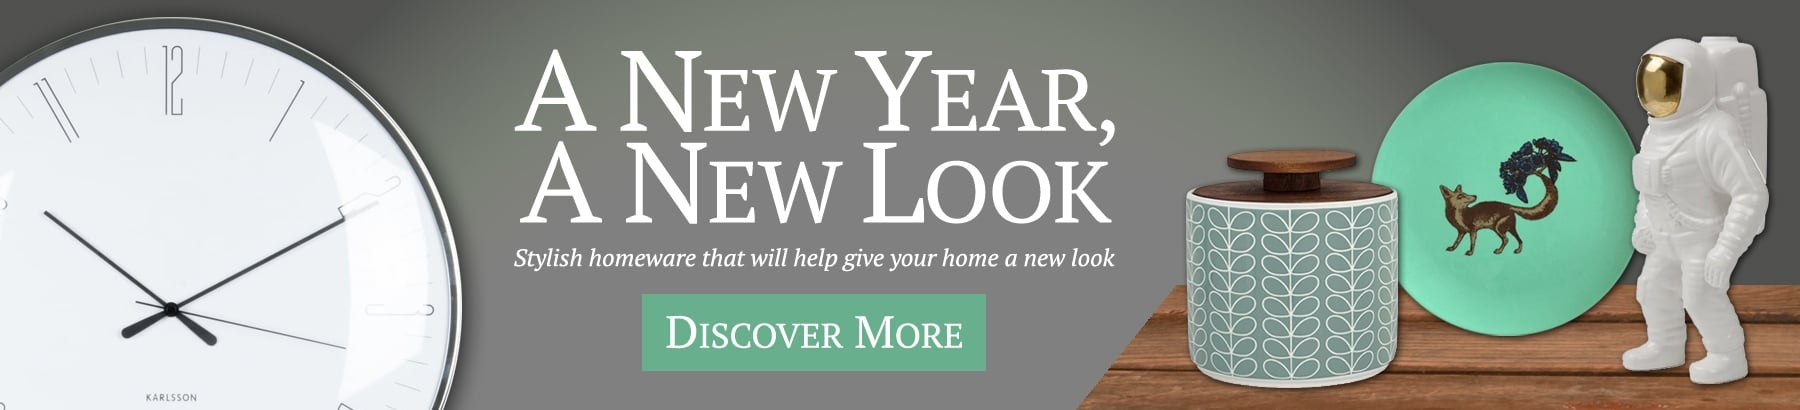 A New Year, A New Look